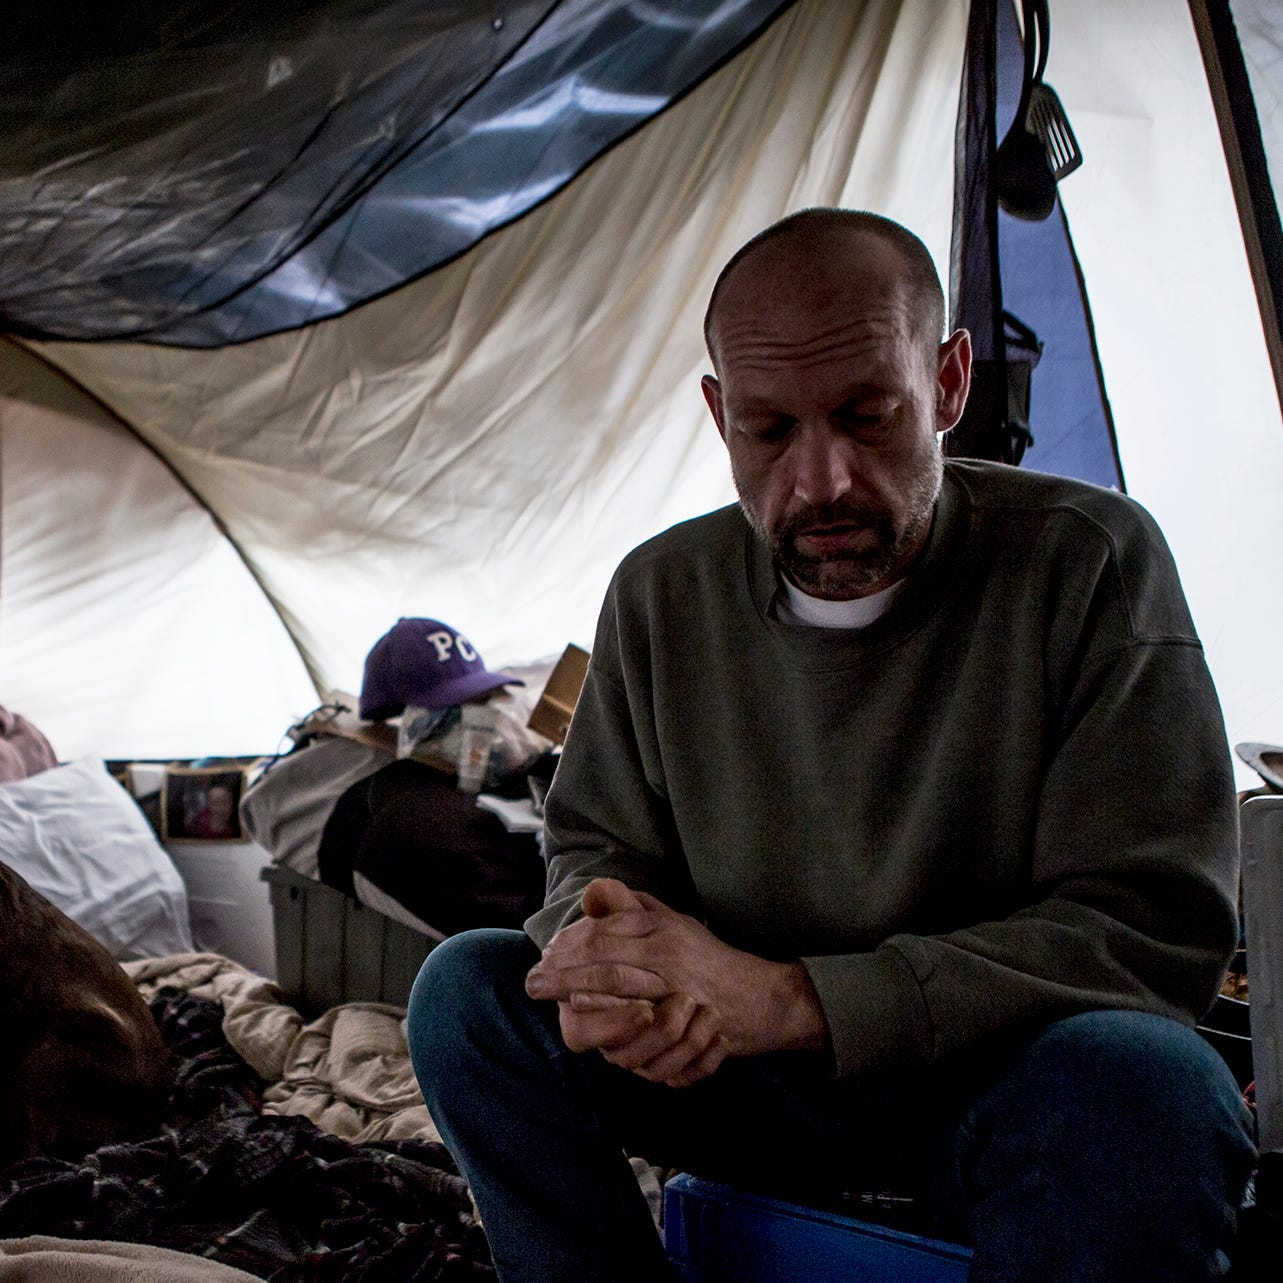 Homelessness appears to be growing problem in Licking County